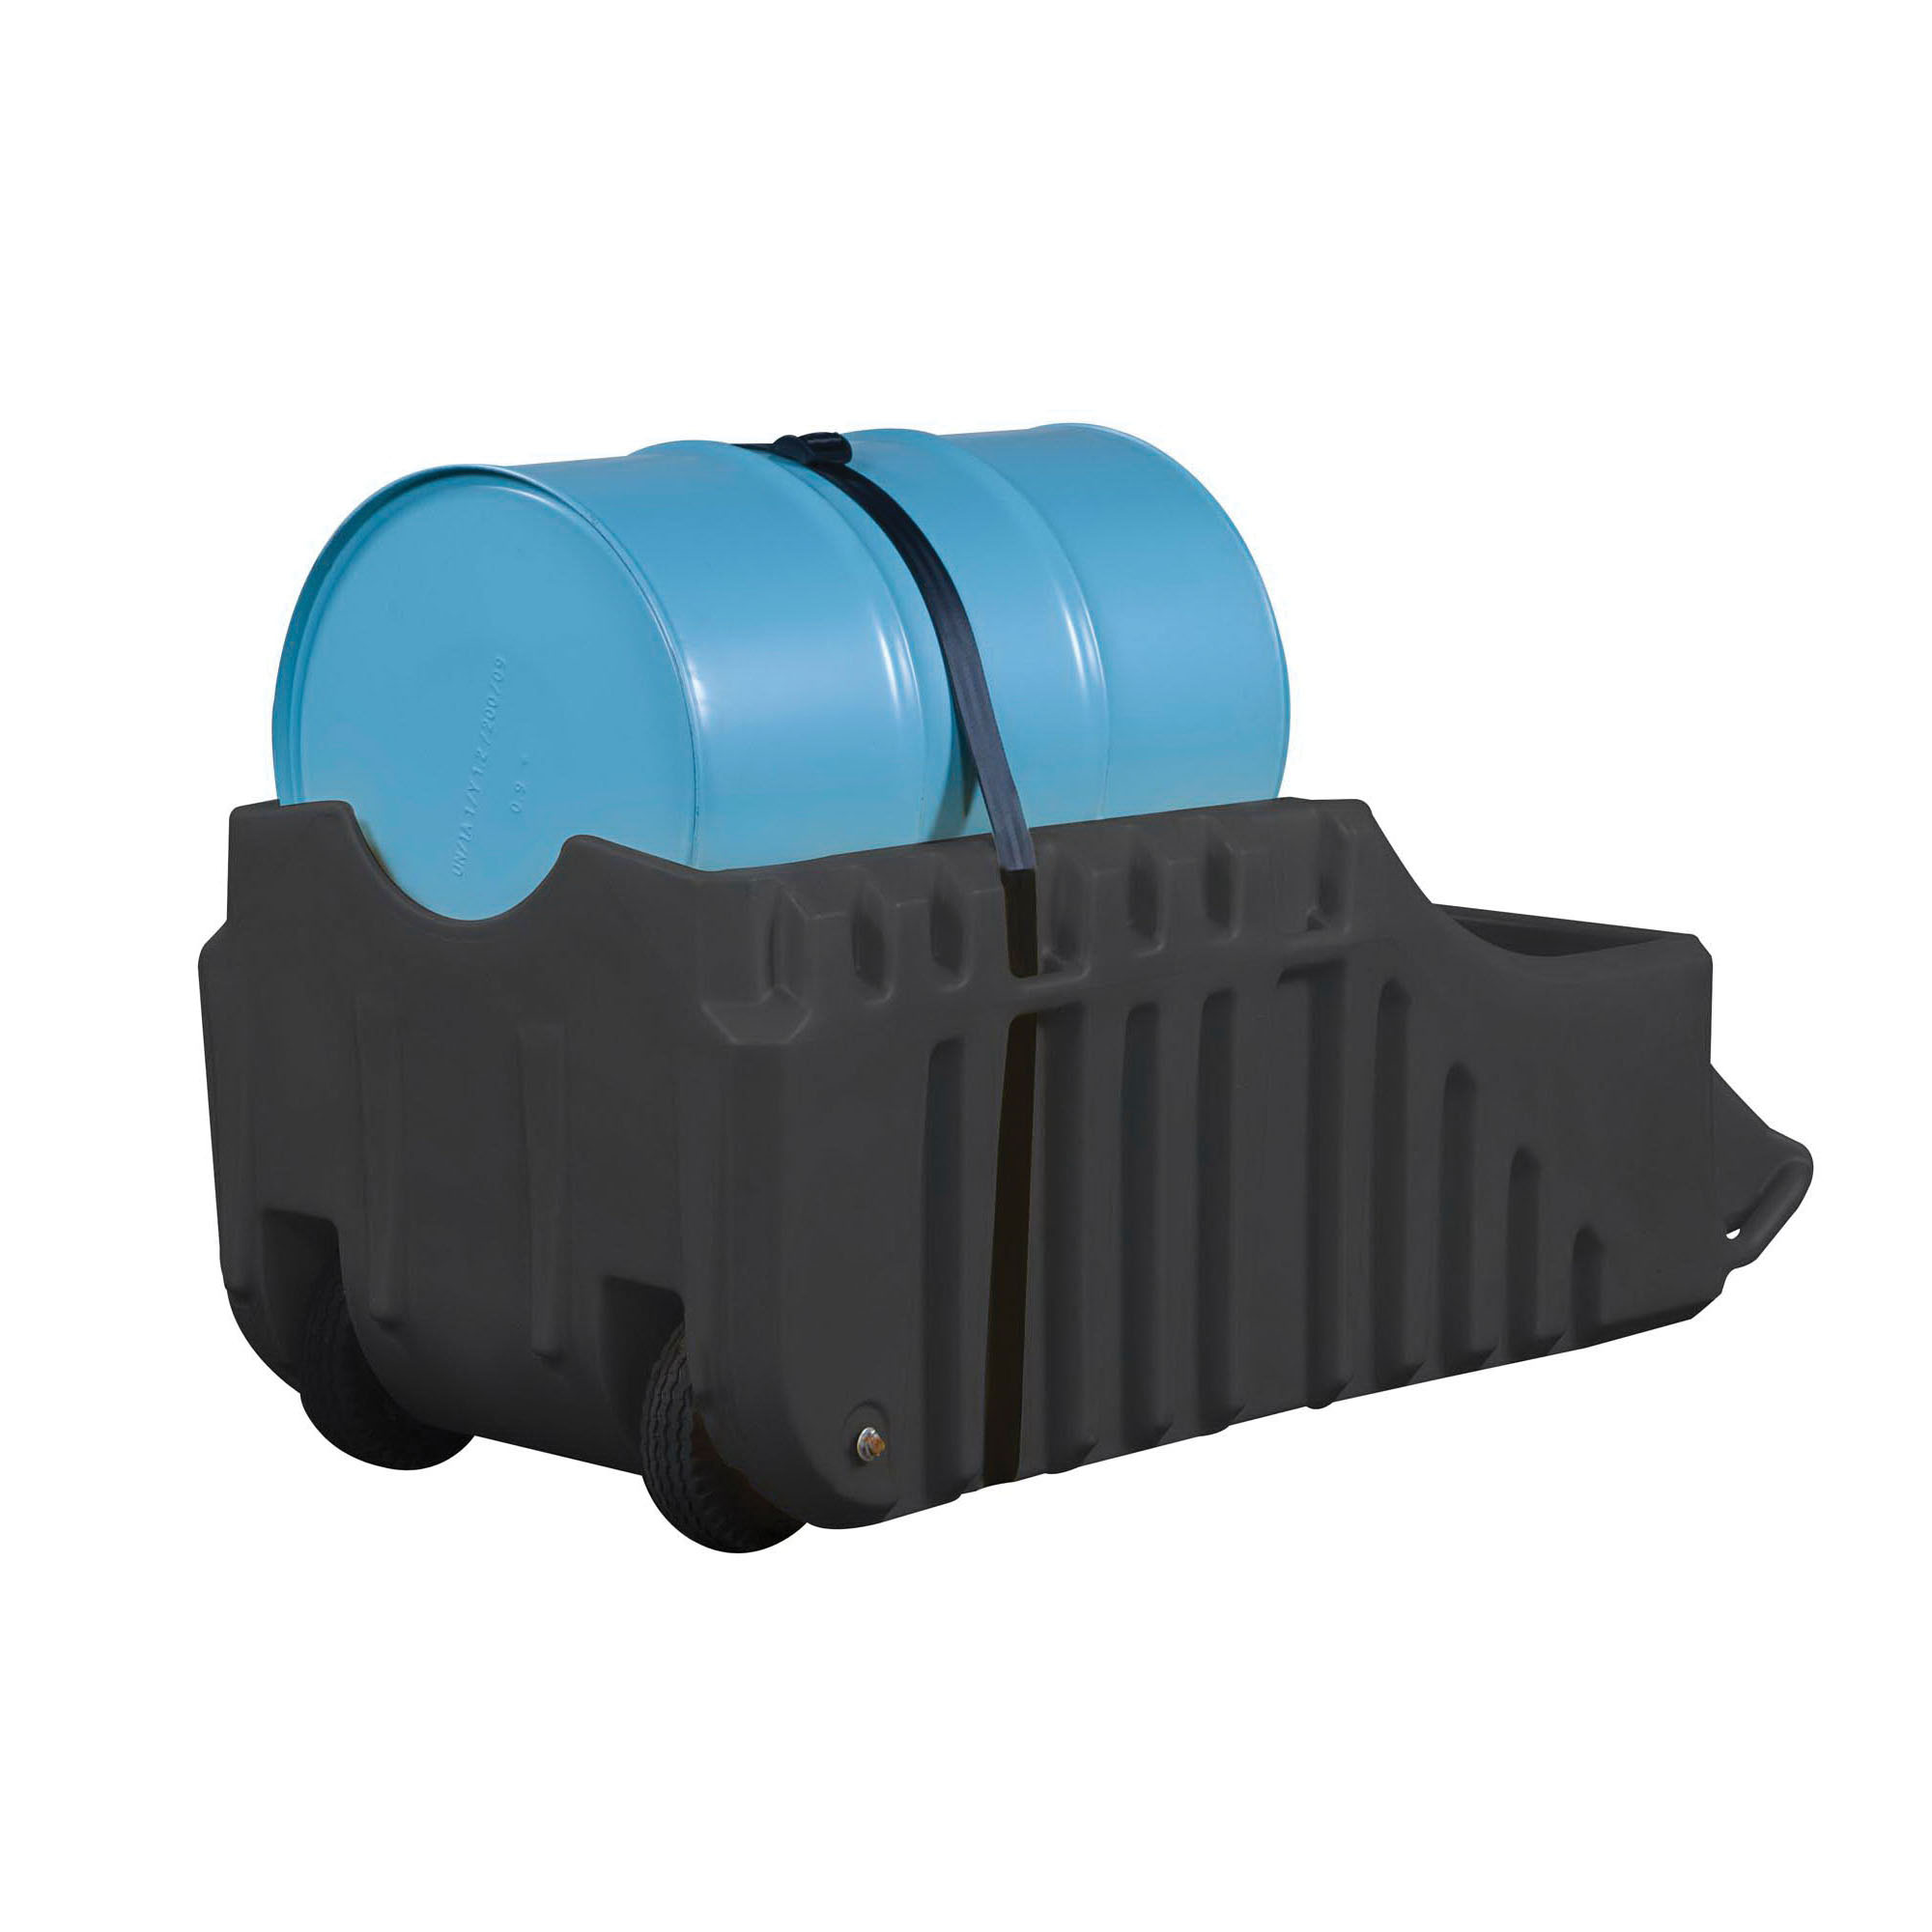 Justrite® 28665 EcoPolyBlend™ Spill Containment Caddy, 1 Drums, 1250 lb Load, 66 gal Spill, Recycled Polyethylene, Black